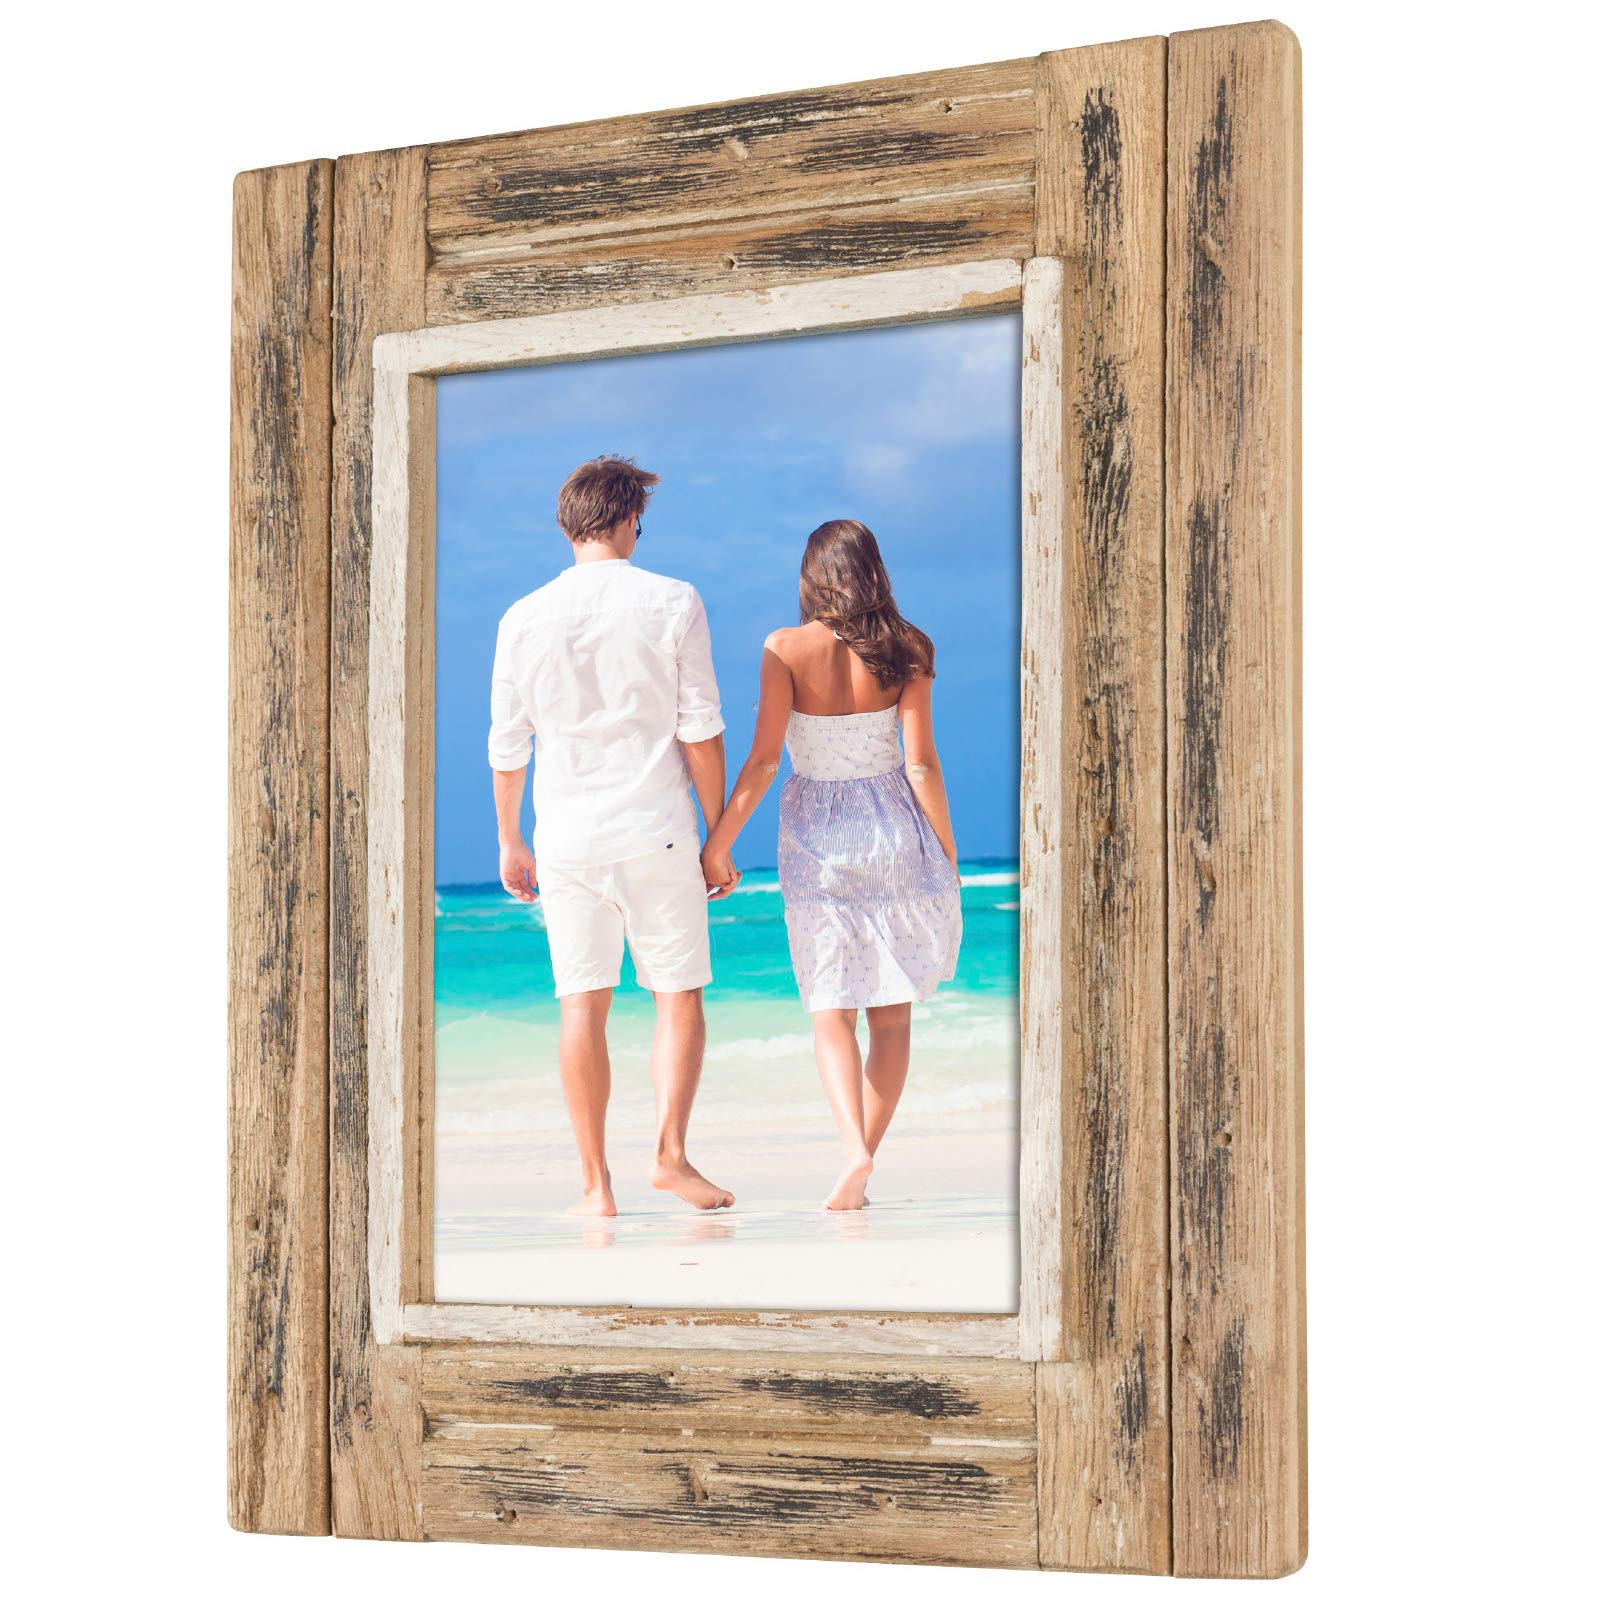 Shabby Chic Rustic Wood Frame: Holds an 5''x7'' Photo: Ready to Hang, Ready to Stand with Built in Easel, Rustic, Distressed, Driftwood, Barnwood, Farmhouse, Reclaimed Wood Picture Frame by Excello Global Products